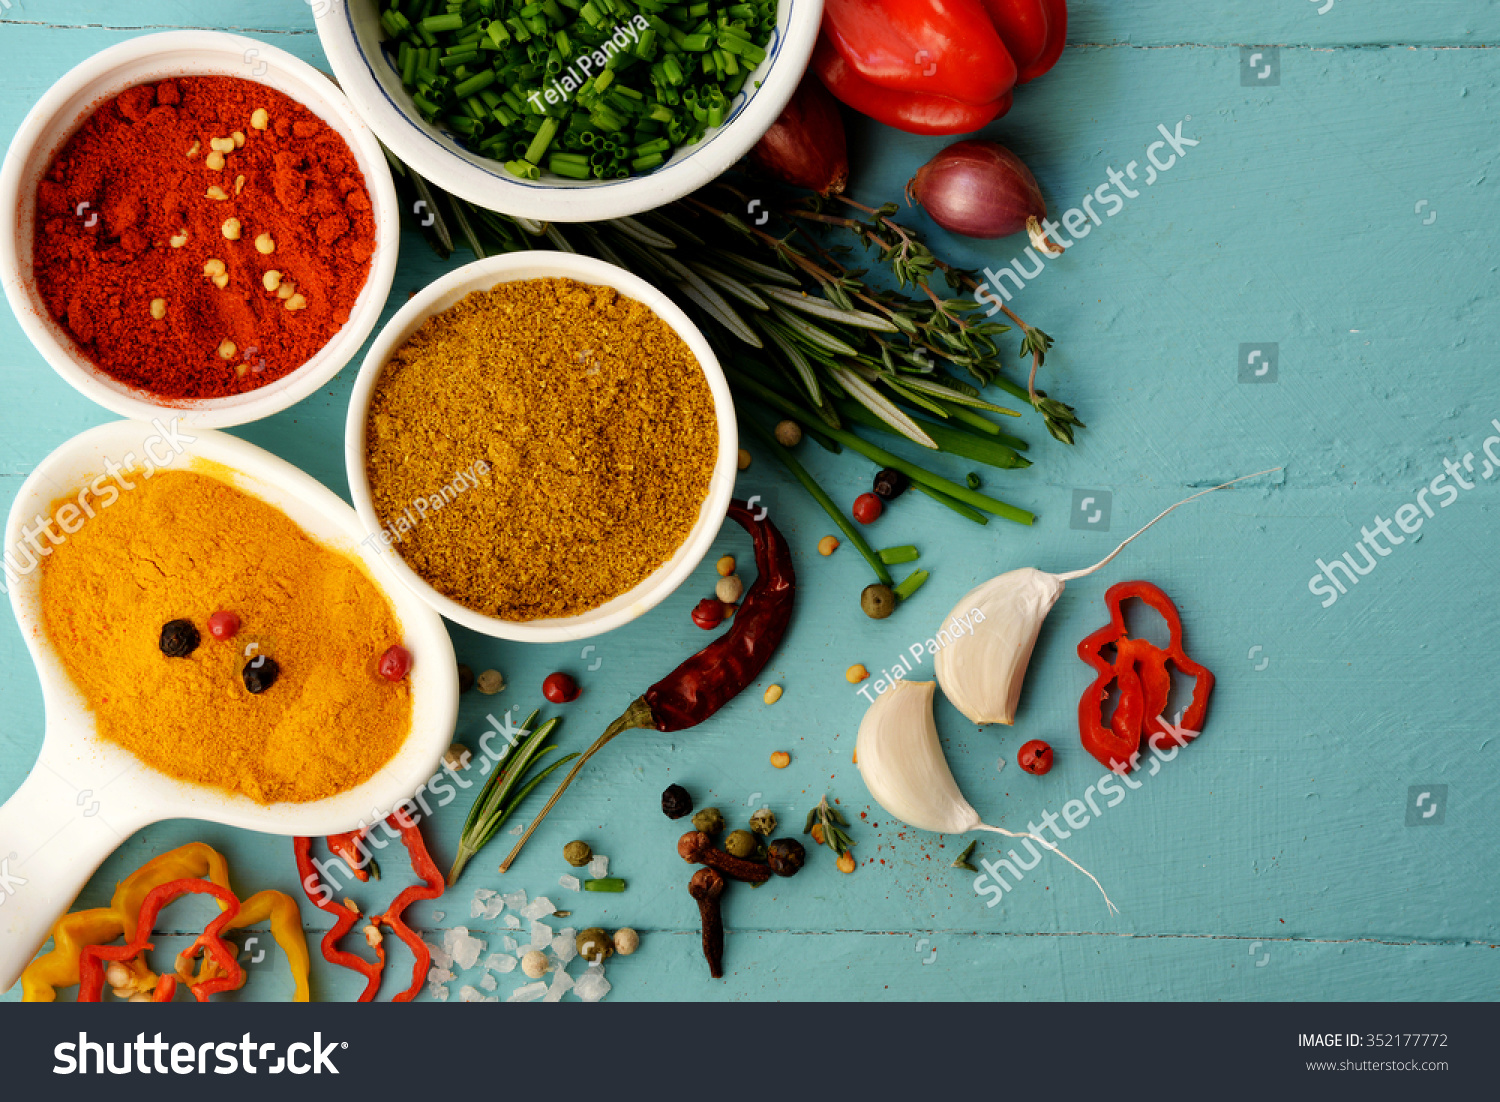 Spices Herbs Over Blue Background Food Stock Photo (Edit Now ...